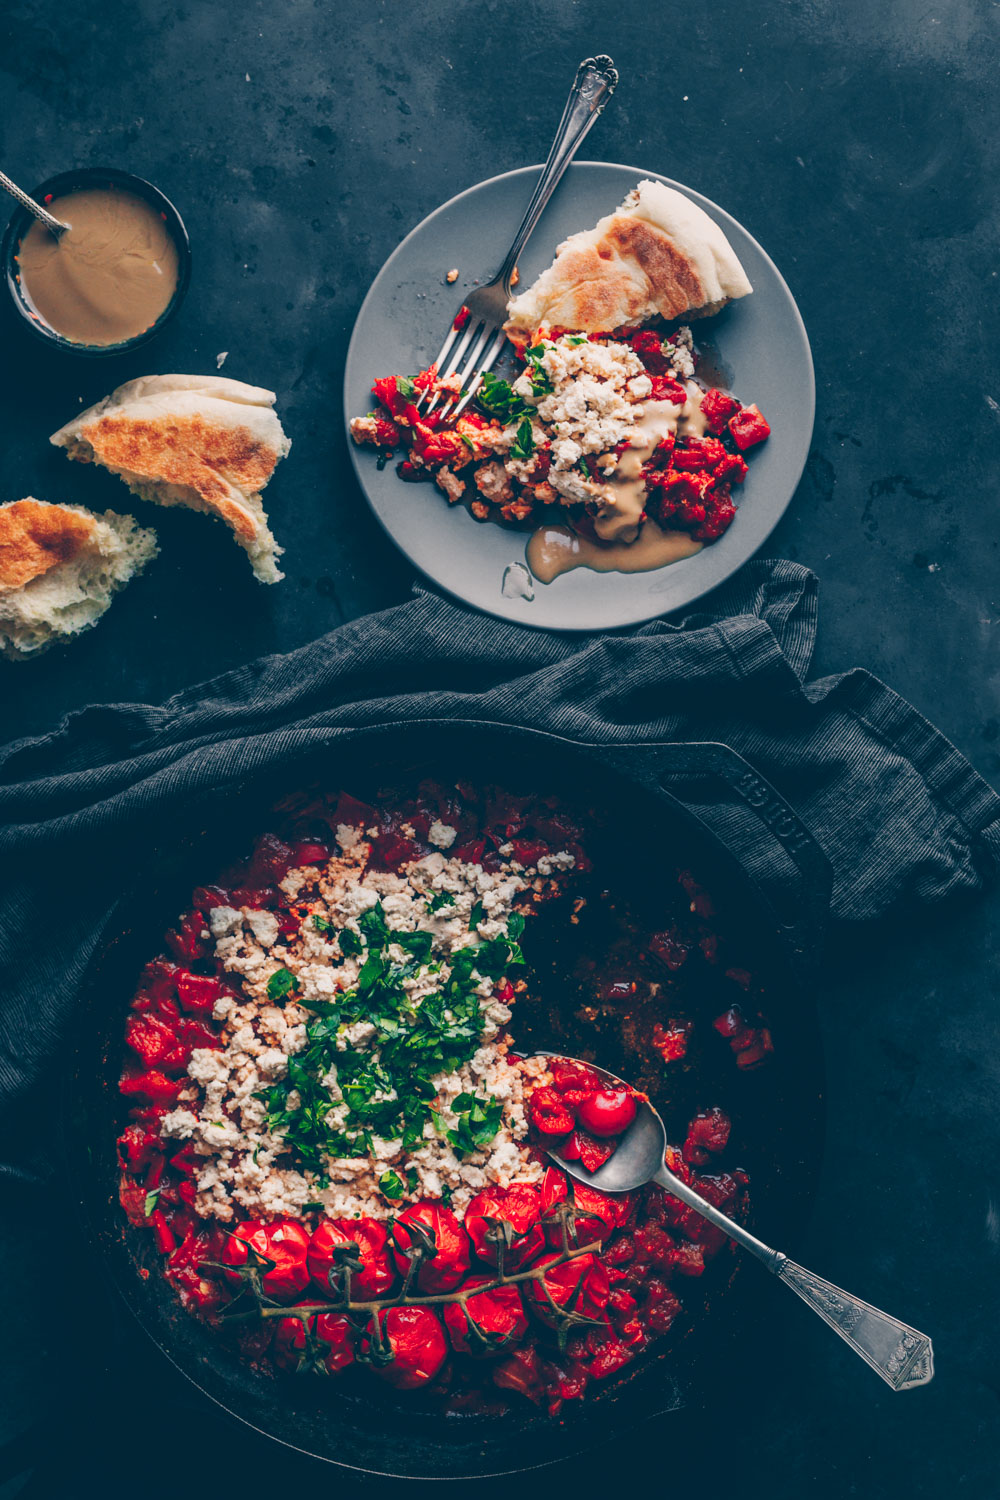 Israeli Vegan Shakshuka with tofu (gluten-free) by Kati of black.white.vivid.